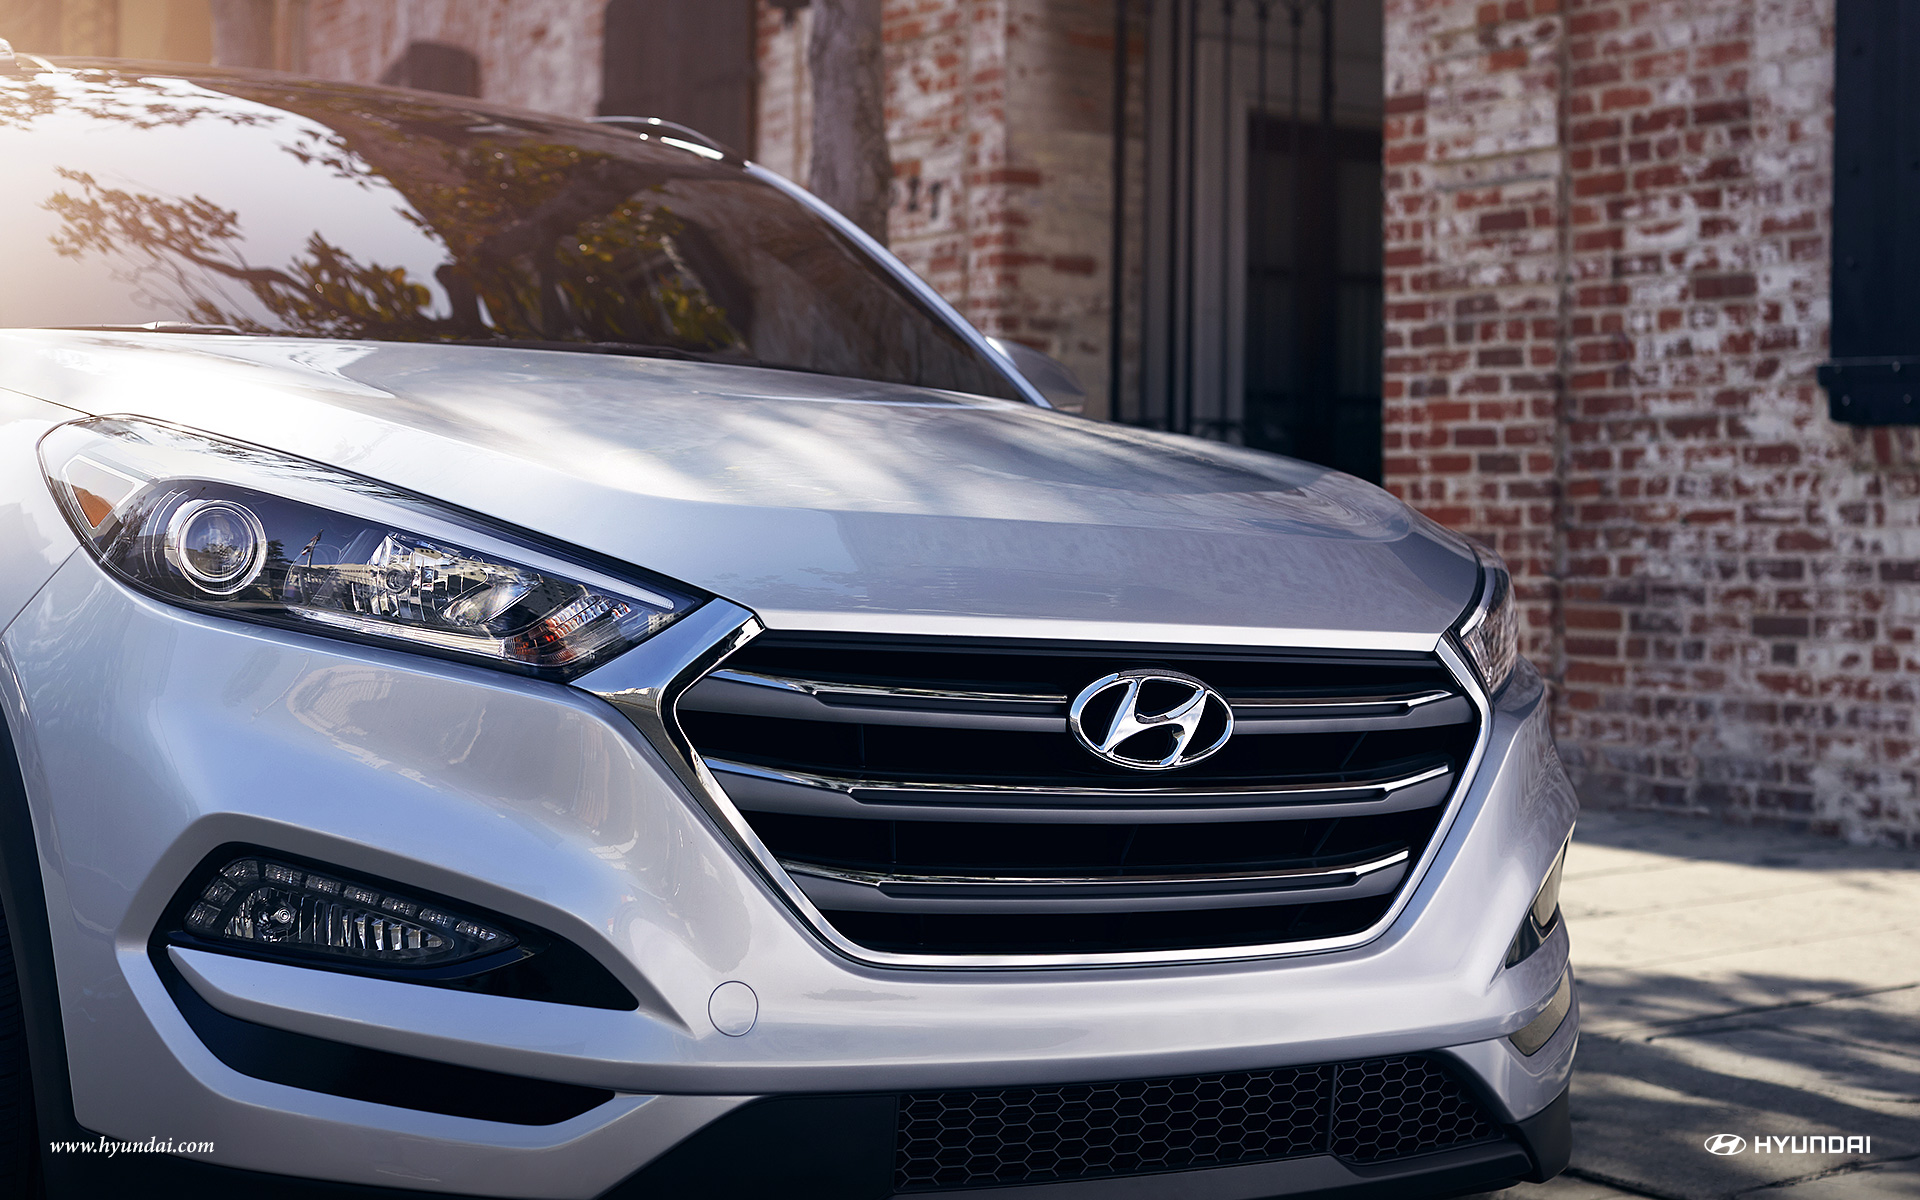 competitif price car articles more guide plus definitely tucson hyundai competitive en definitivement the